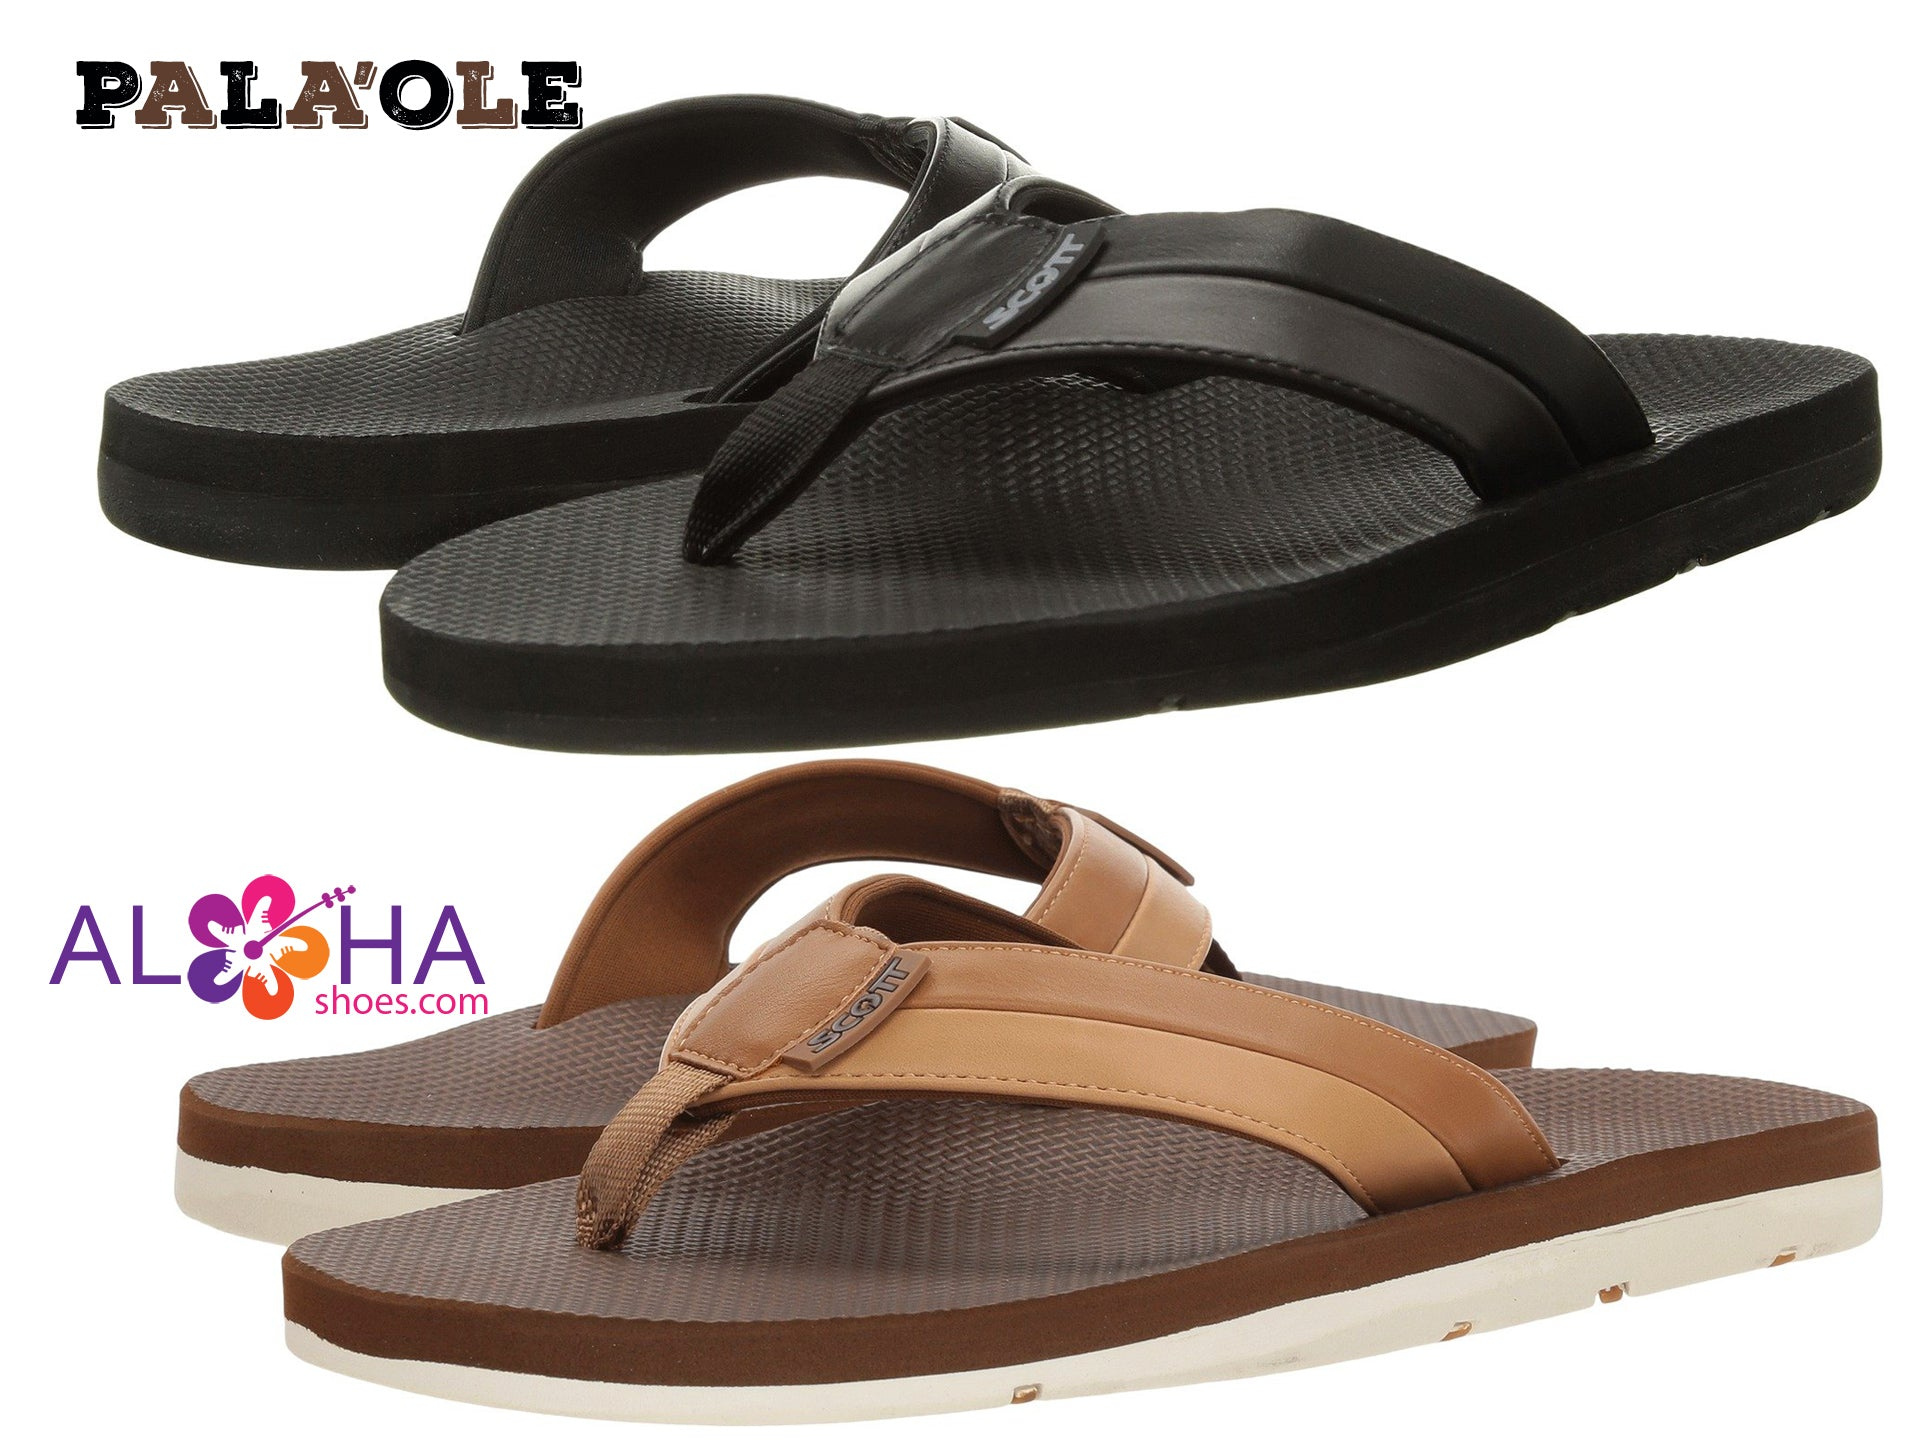 Scott Hawaii Palaole Beach Sandals Two-Toned Bottom Arch Support - AlohaShoes.com